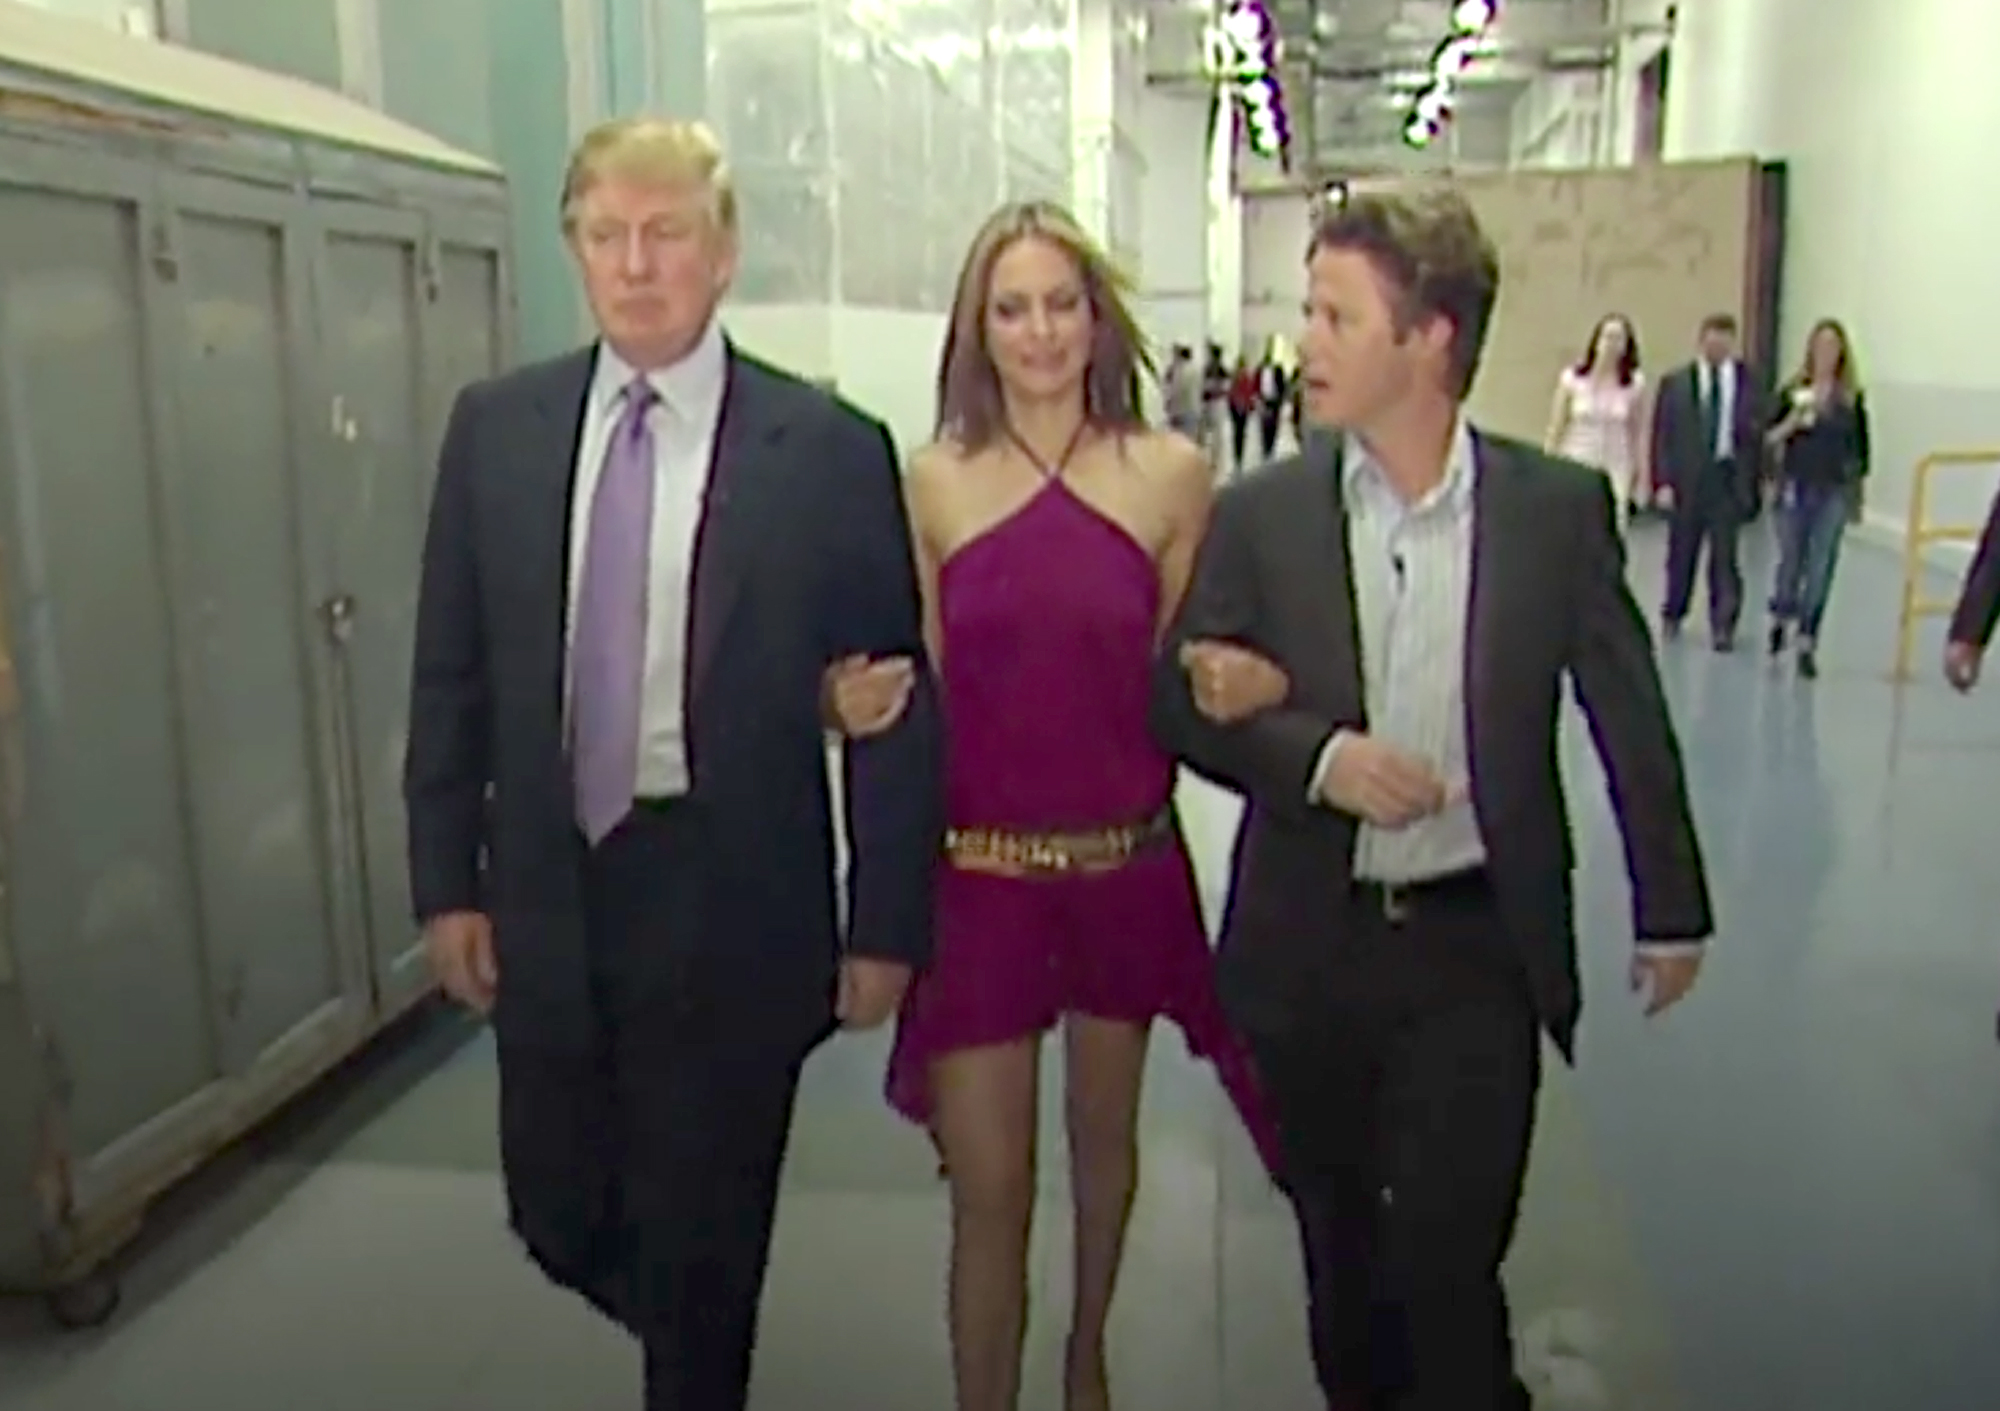 Trump Caught on Tape Making Lewd Comments About Women in 2005 ...